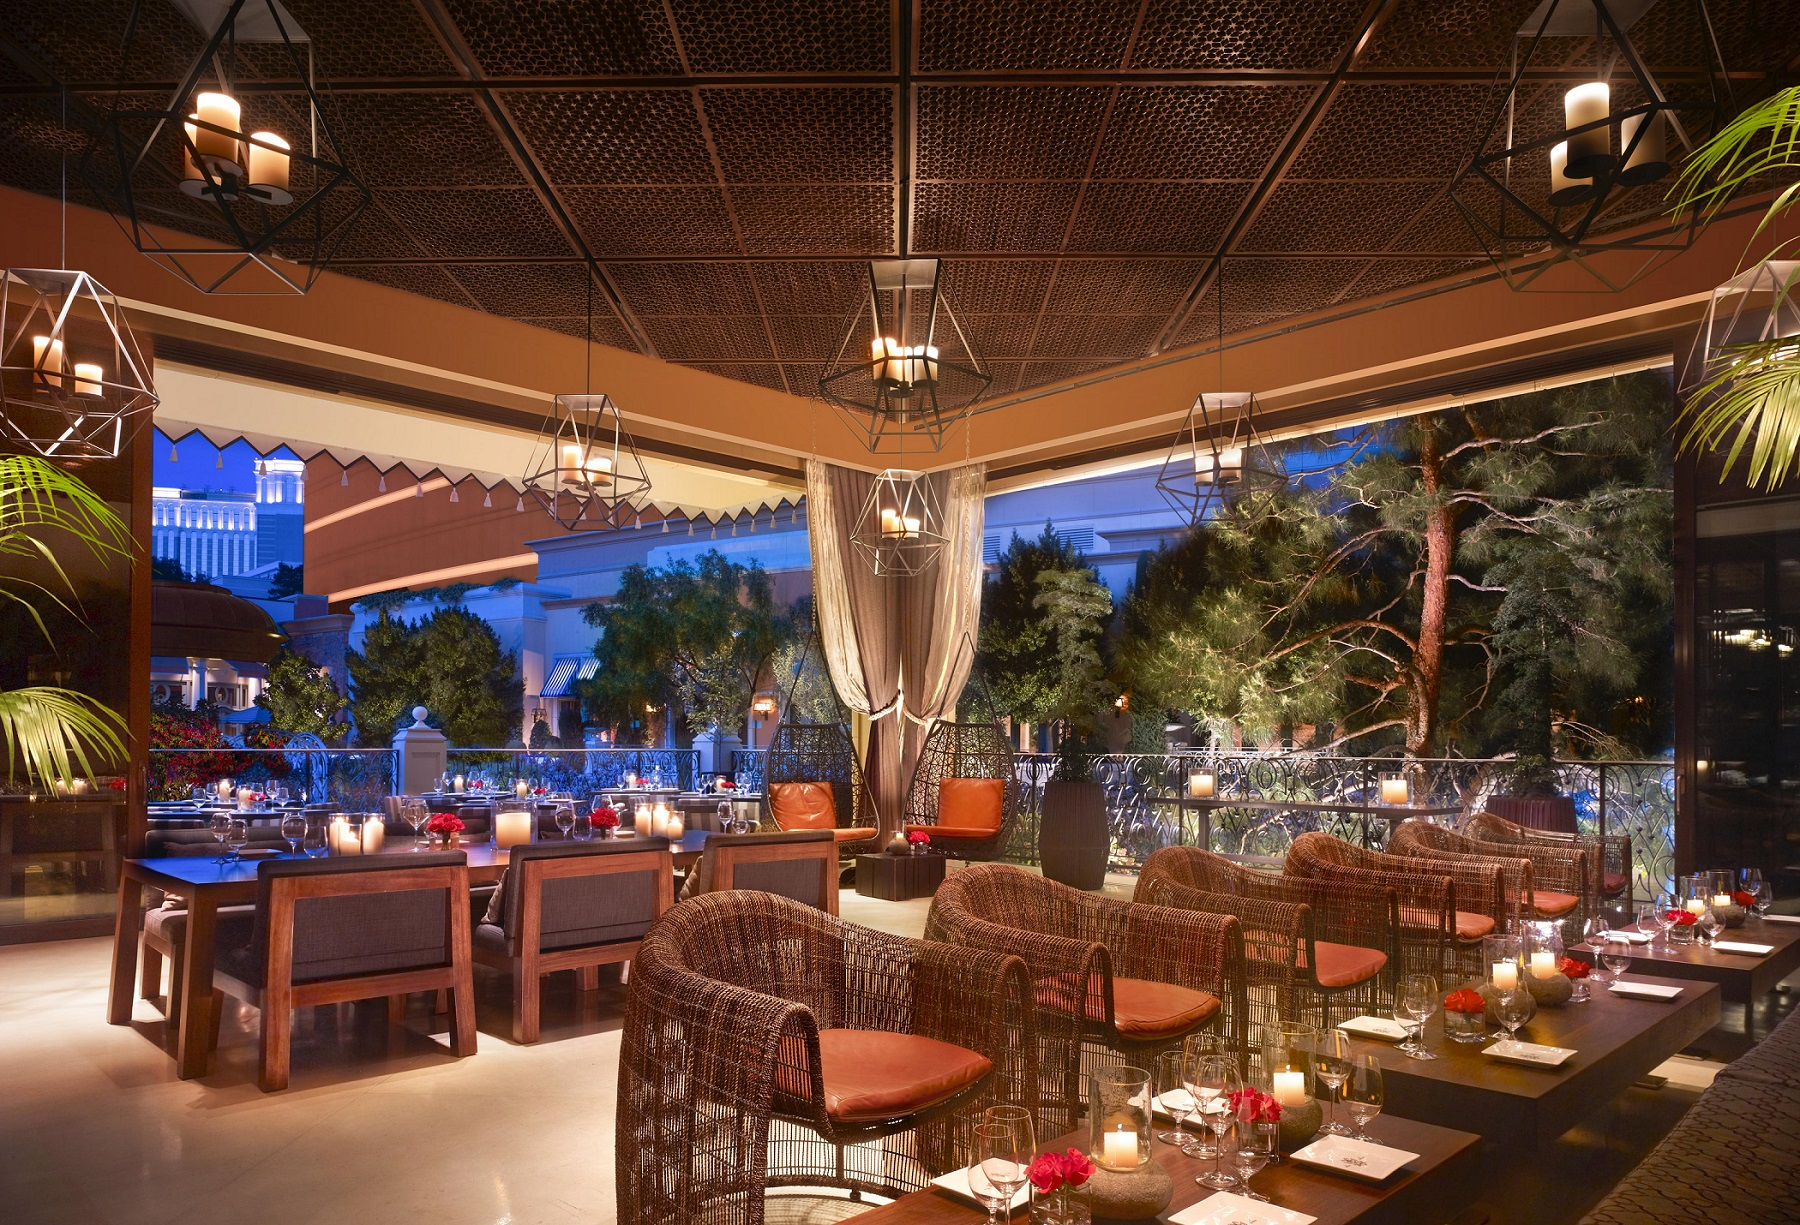 Chainsmokers Light Up La Cave Wine Food Winery At Wynn Las Vegas New